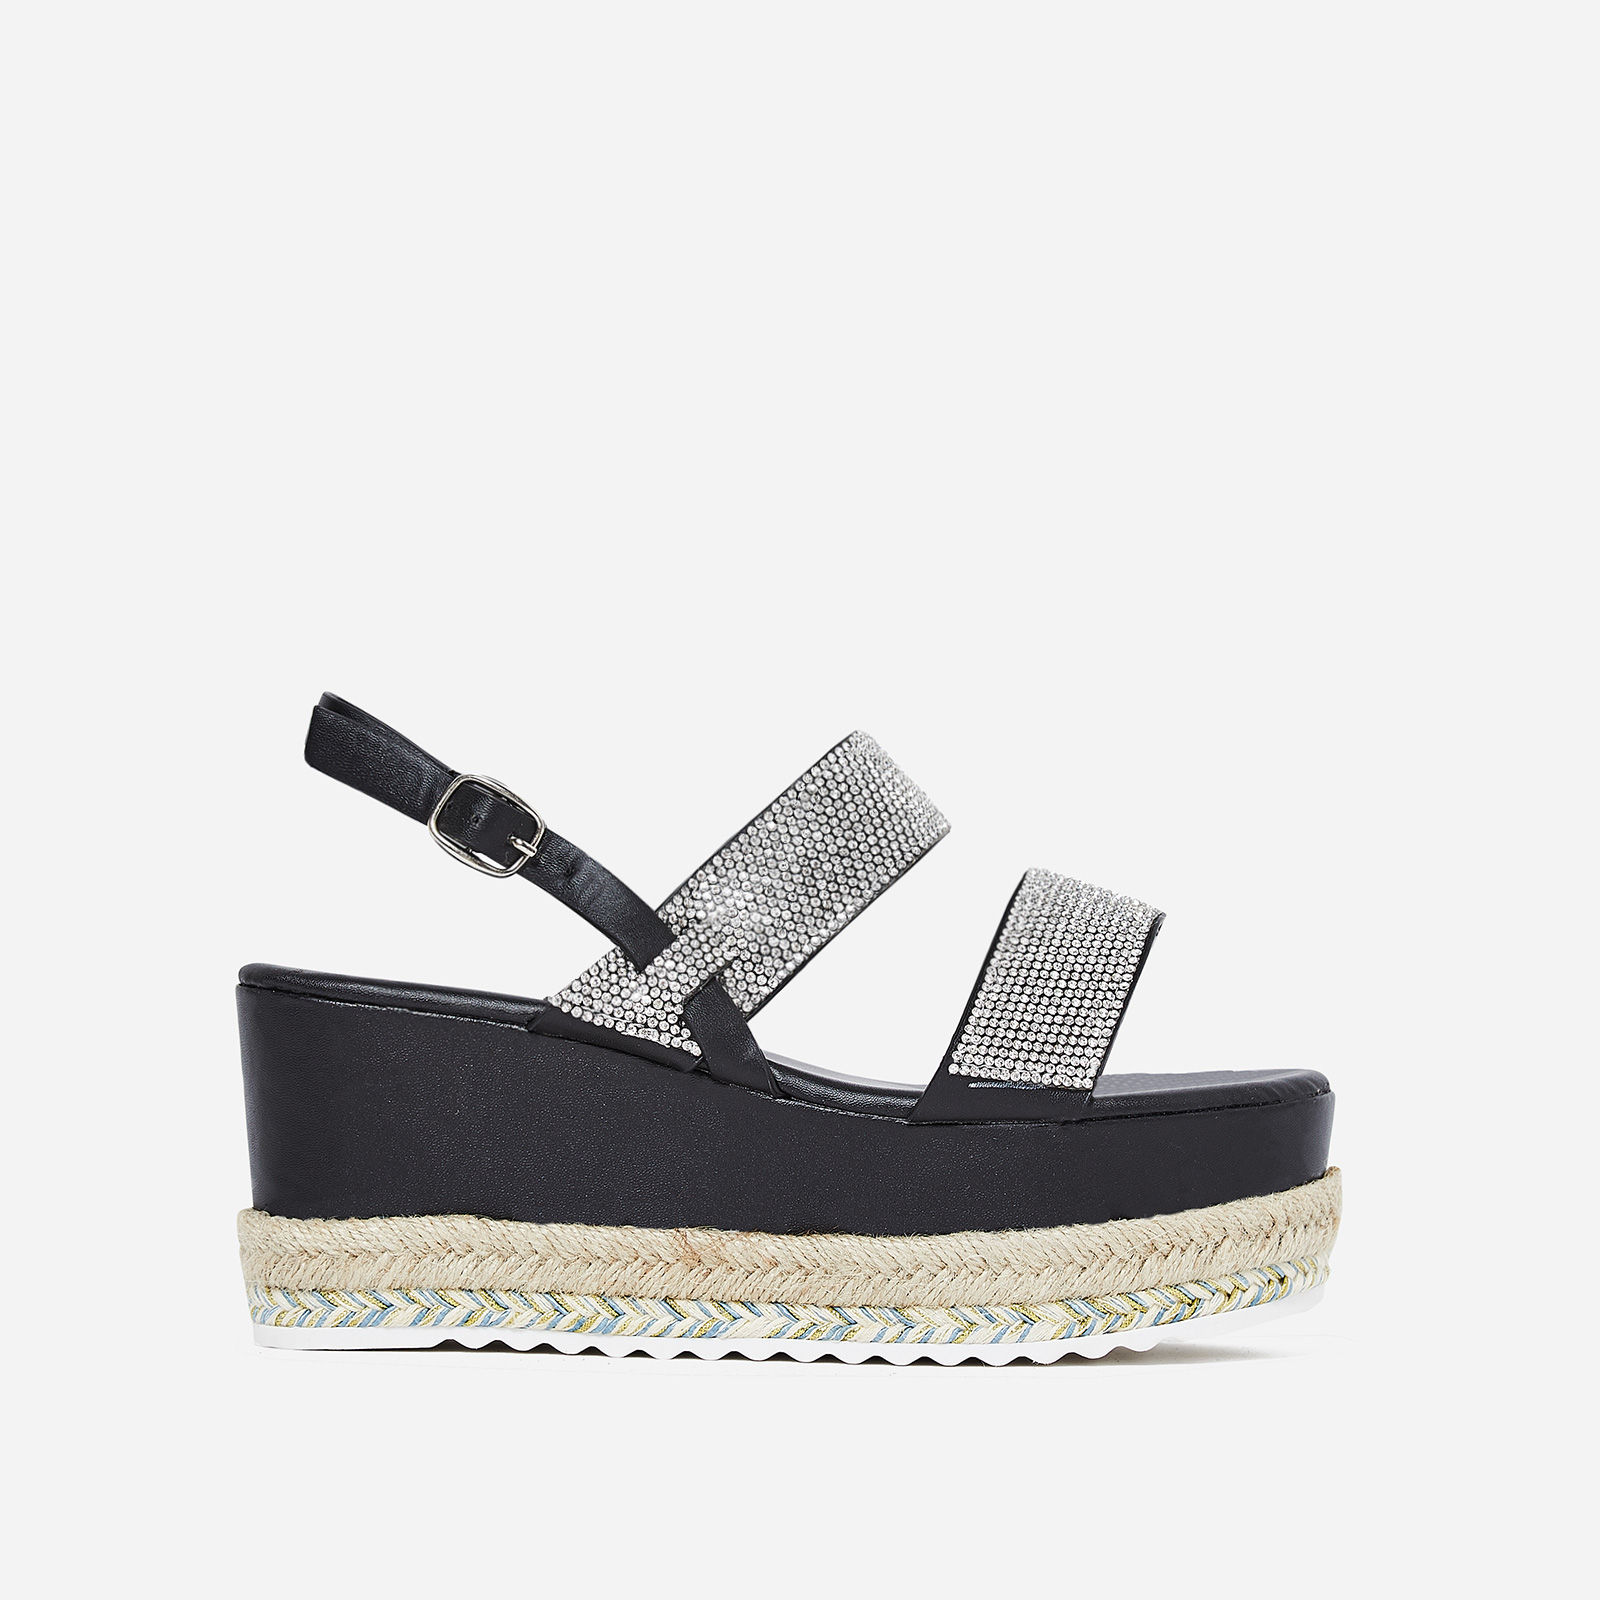 Jaina Diamante Flatform Espadrille Sandal In Black Faux Leather